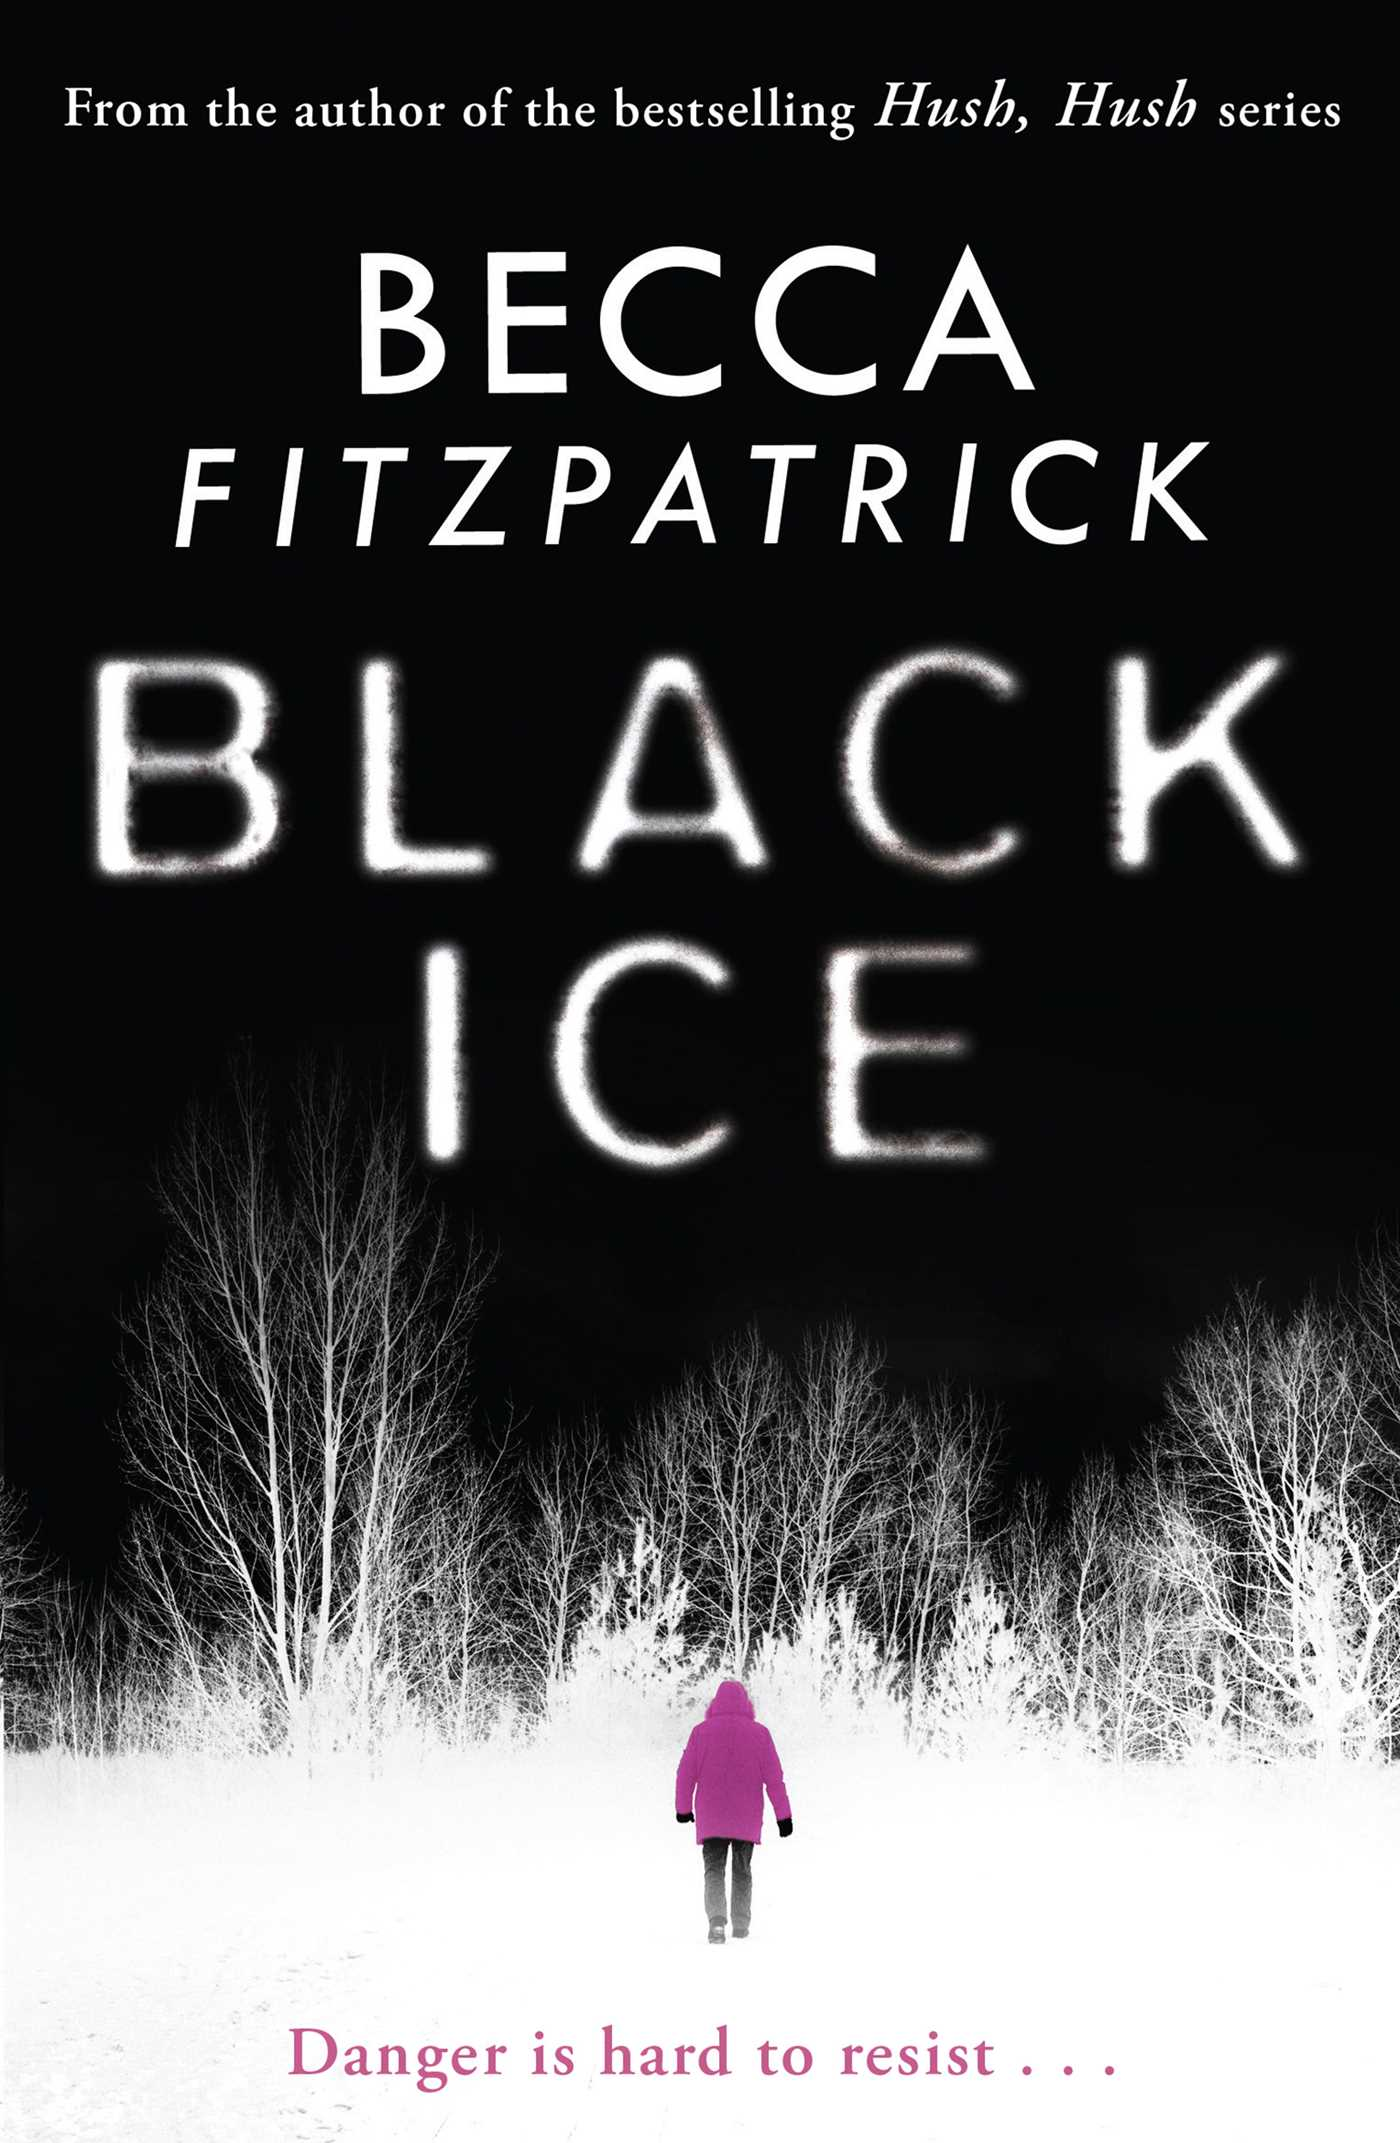 Becca Fitzpatrick Libros Black Ice Book By Becca Fitzpatrick Official Publisher